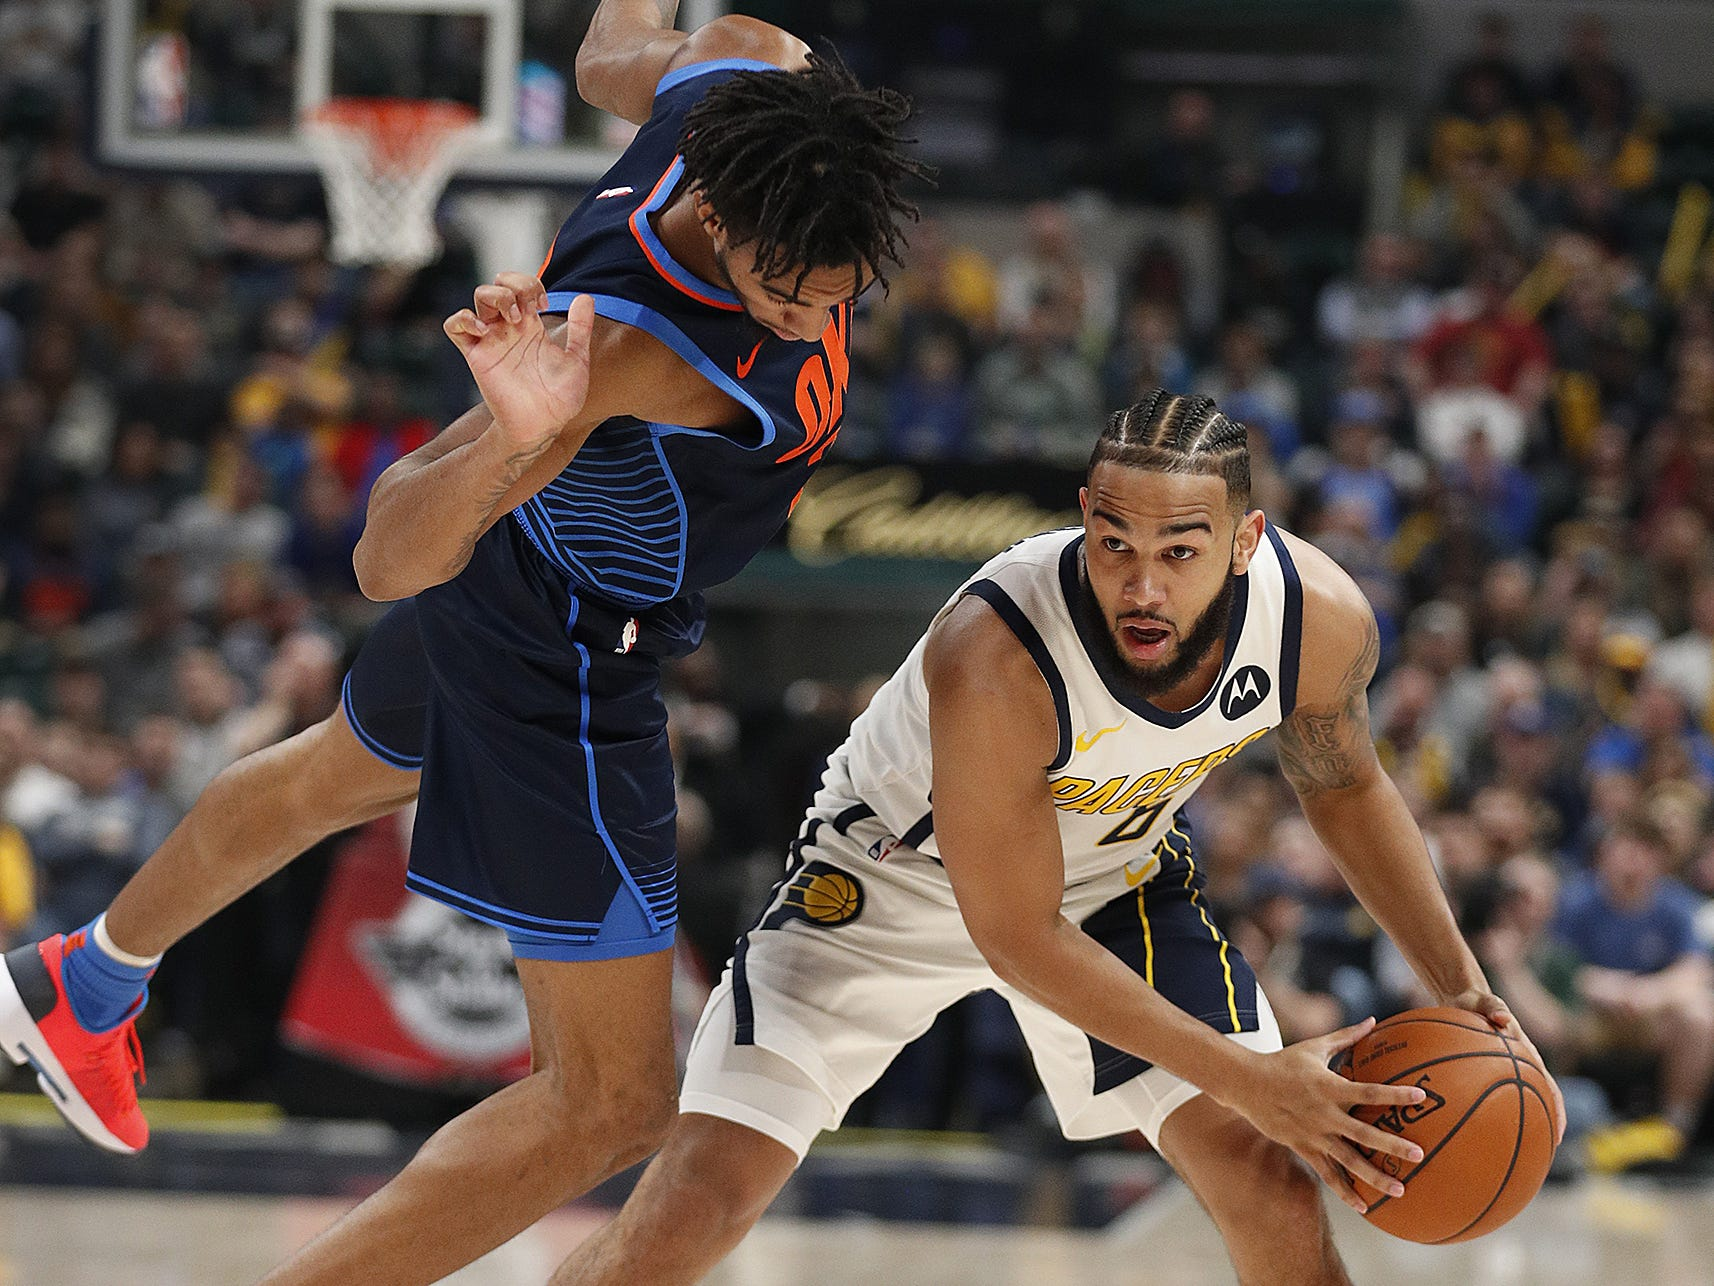 Indiana Pacers guard Cory Joseph (6) looks on as Oklahoma City Thunder guard Terrance Ferguson (23) falls over hin in the first half of their game at Bankers Life Fieldhouse on Thursday, Mar. 14, 2019.